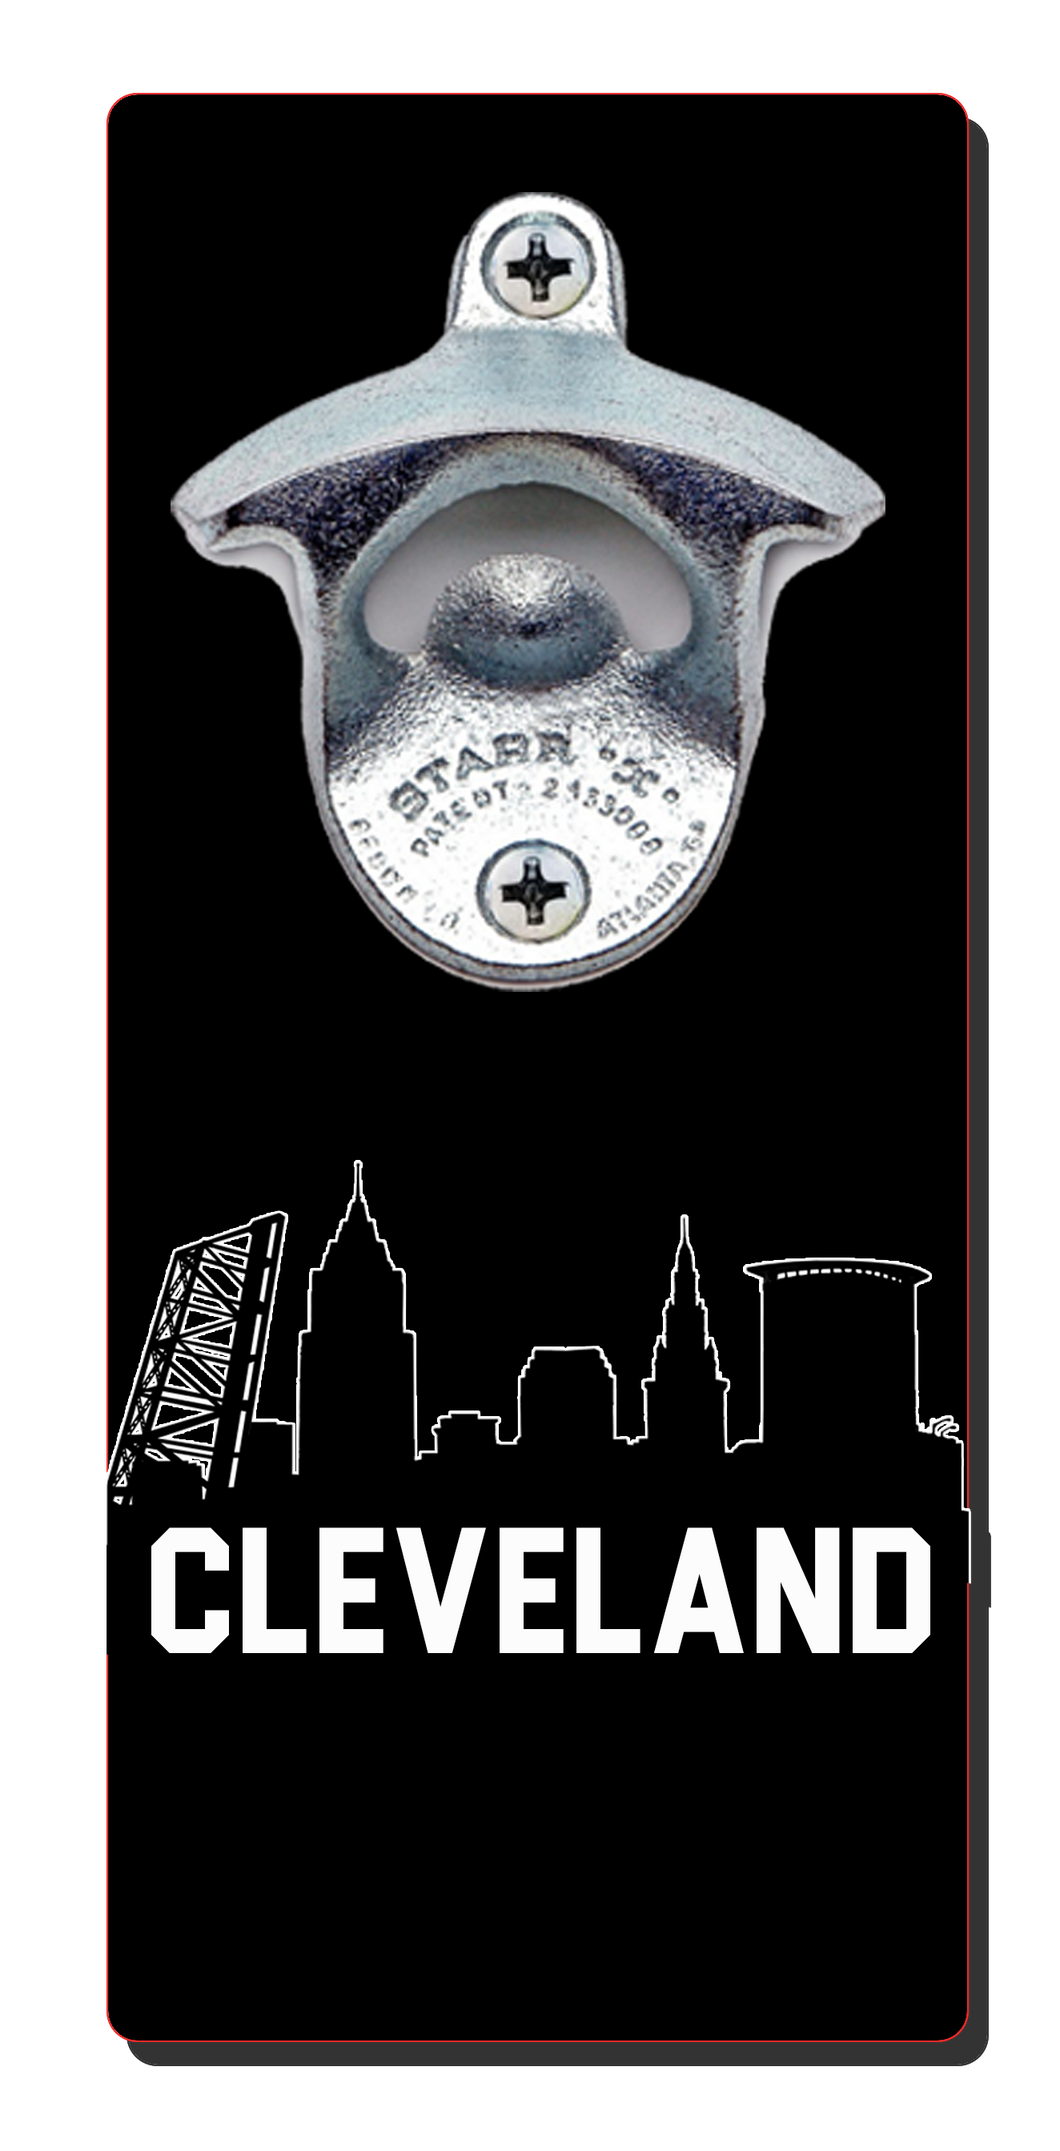 Cleveland Skyline - Magnetic Bottle Opener